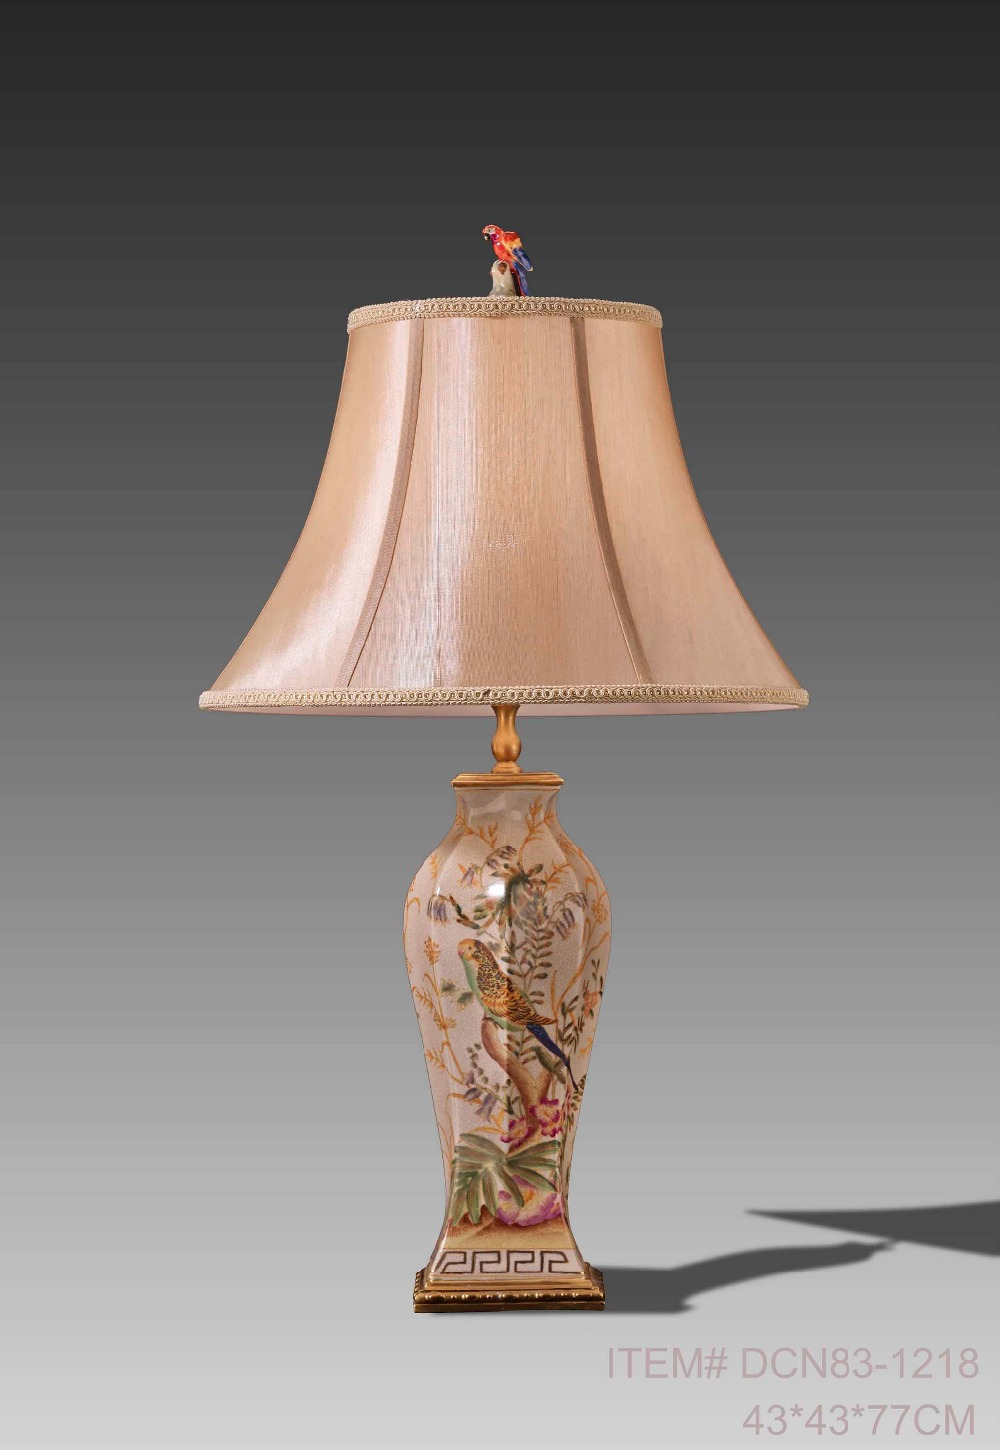 European style antique porcelain table lamp brass base luxury european style antique porcelain table lamp brass base luxury ceramic art decoration in table lamps from lights lighting on aliexpress alibaba group aloadofball Image collections